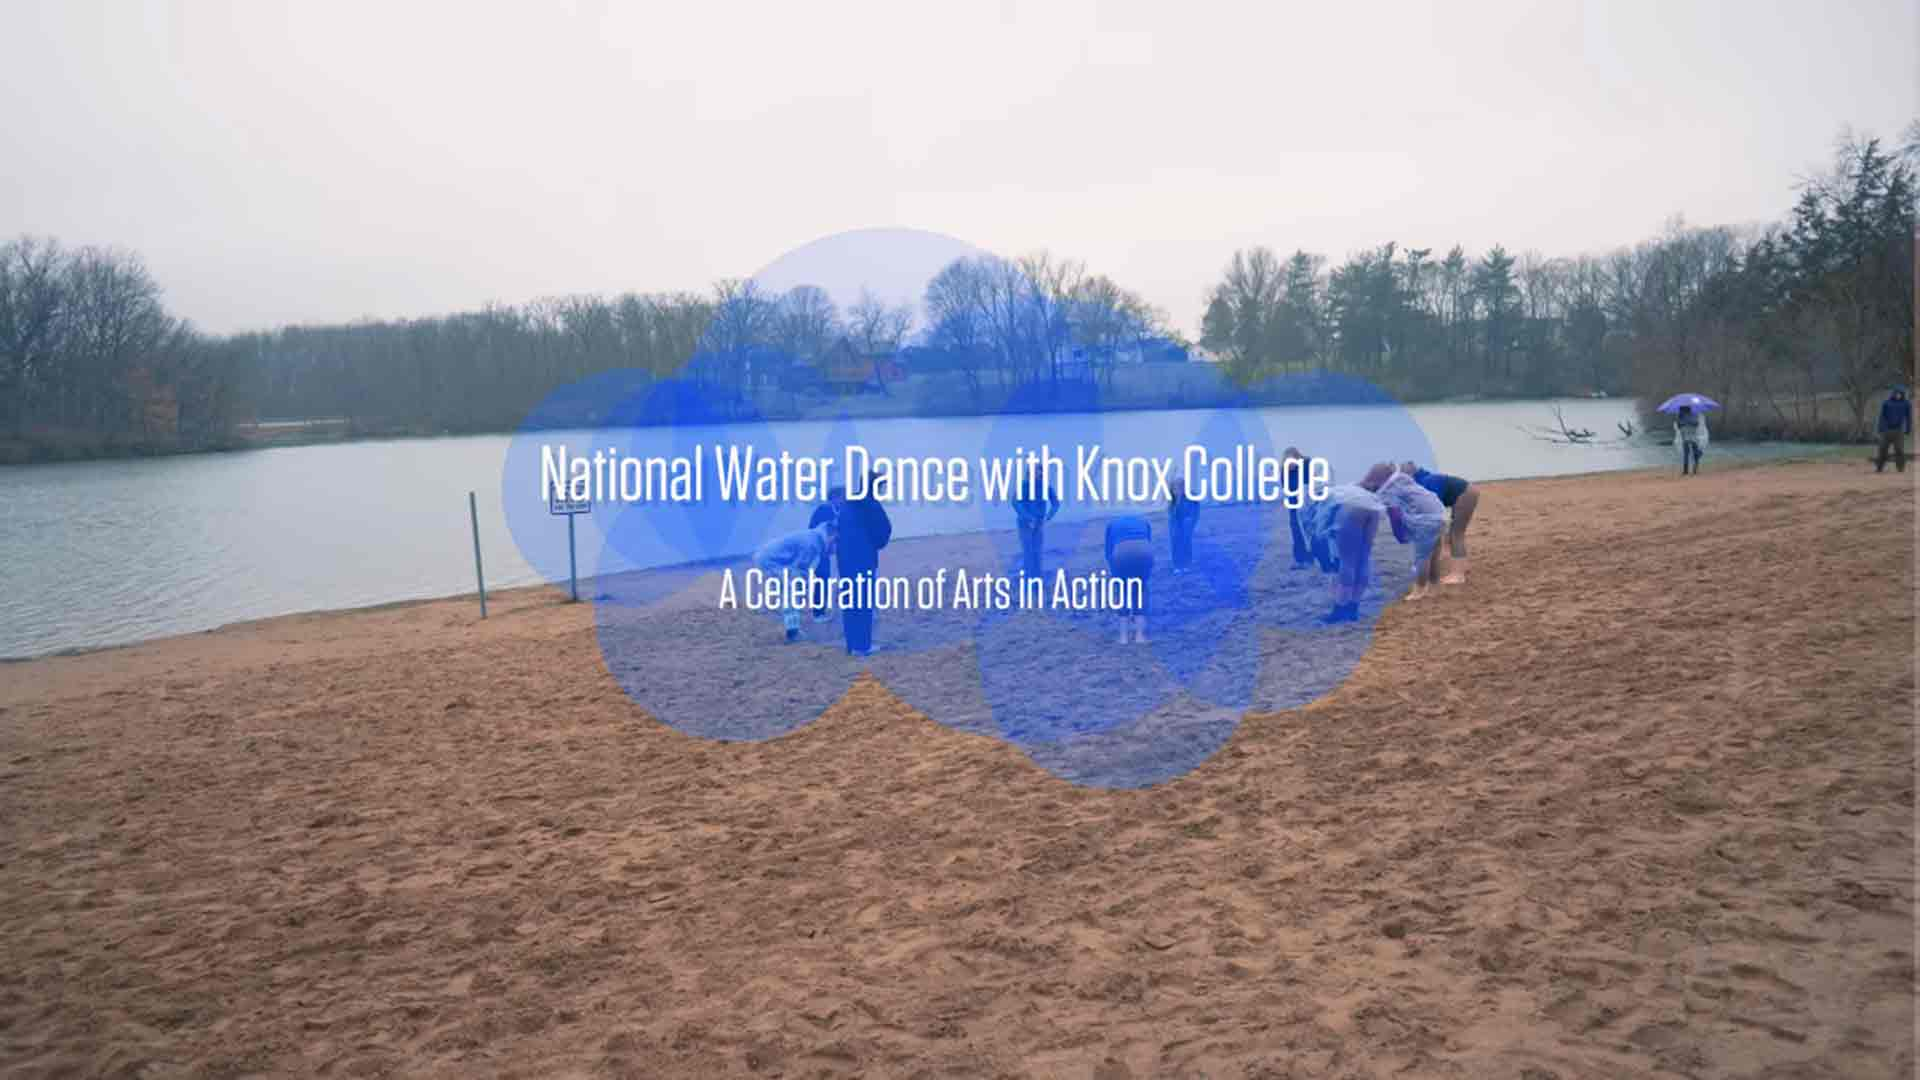 National Water Dance with Knox College